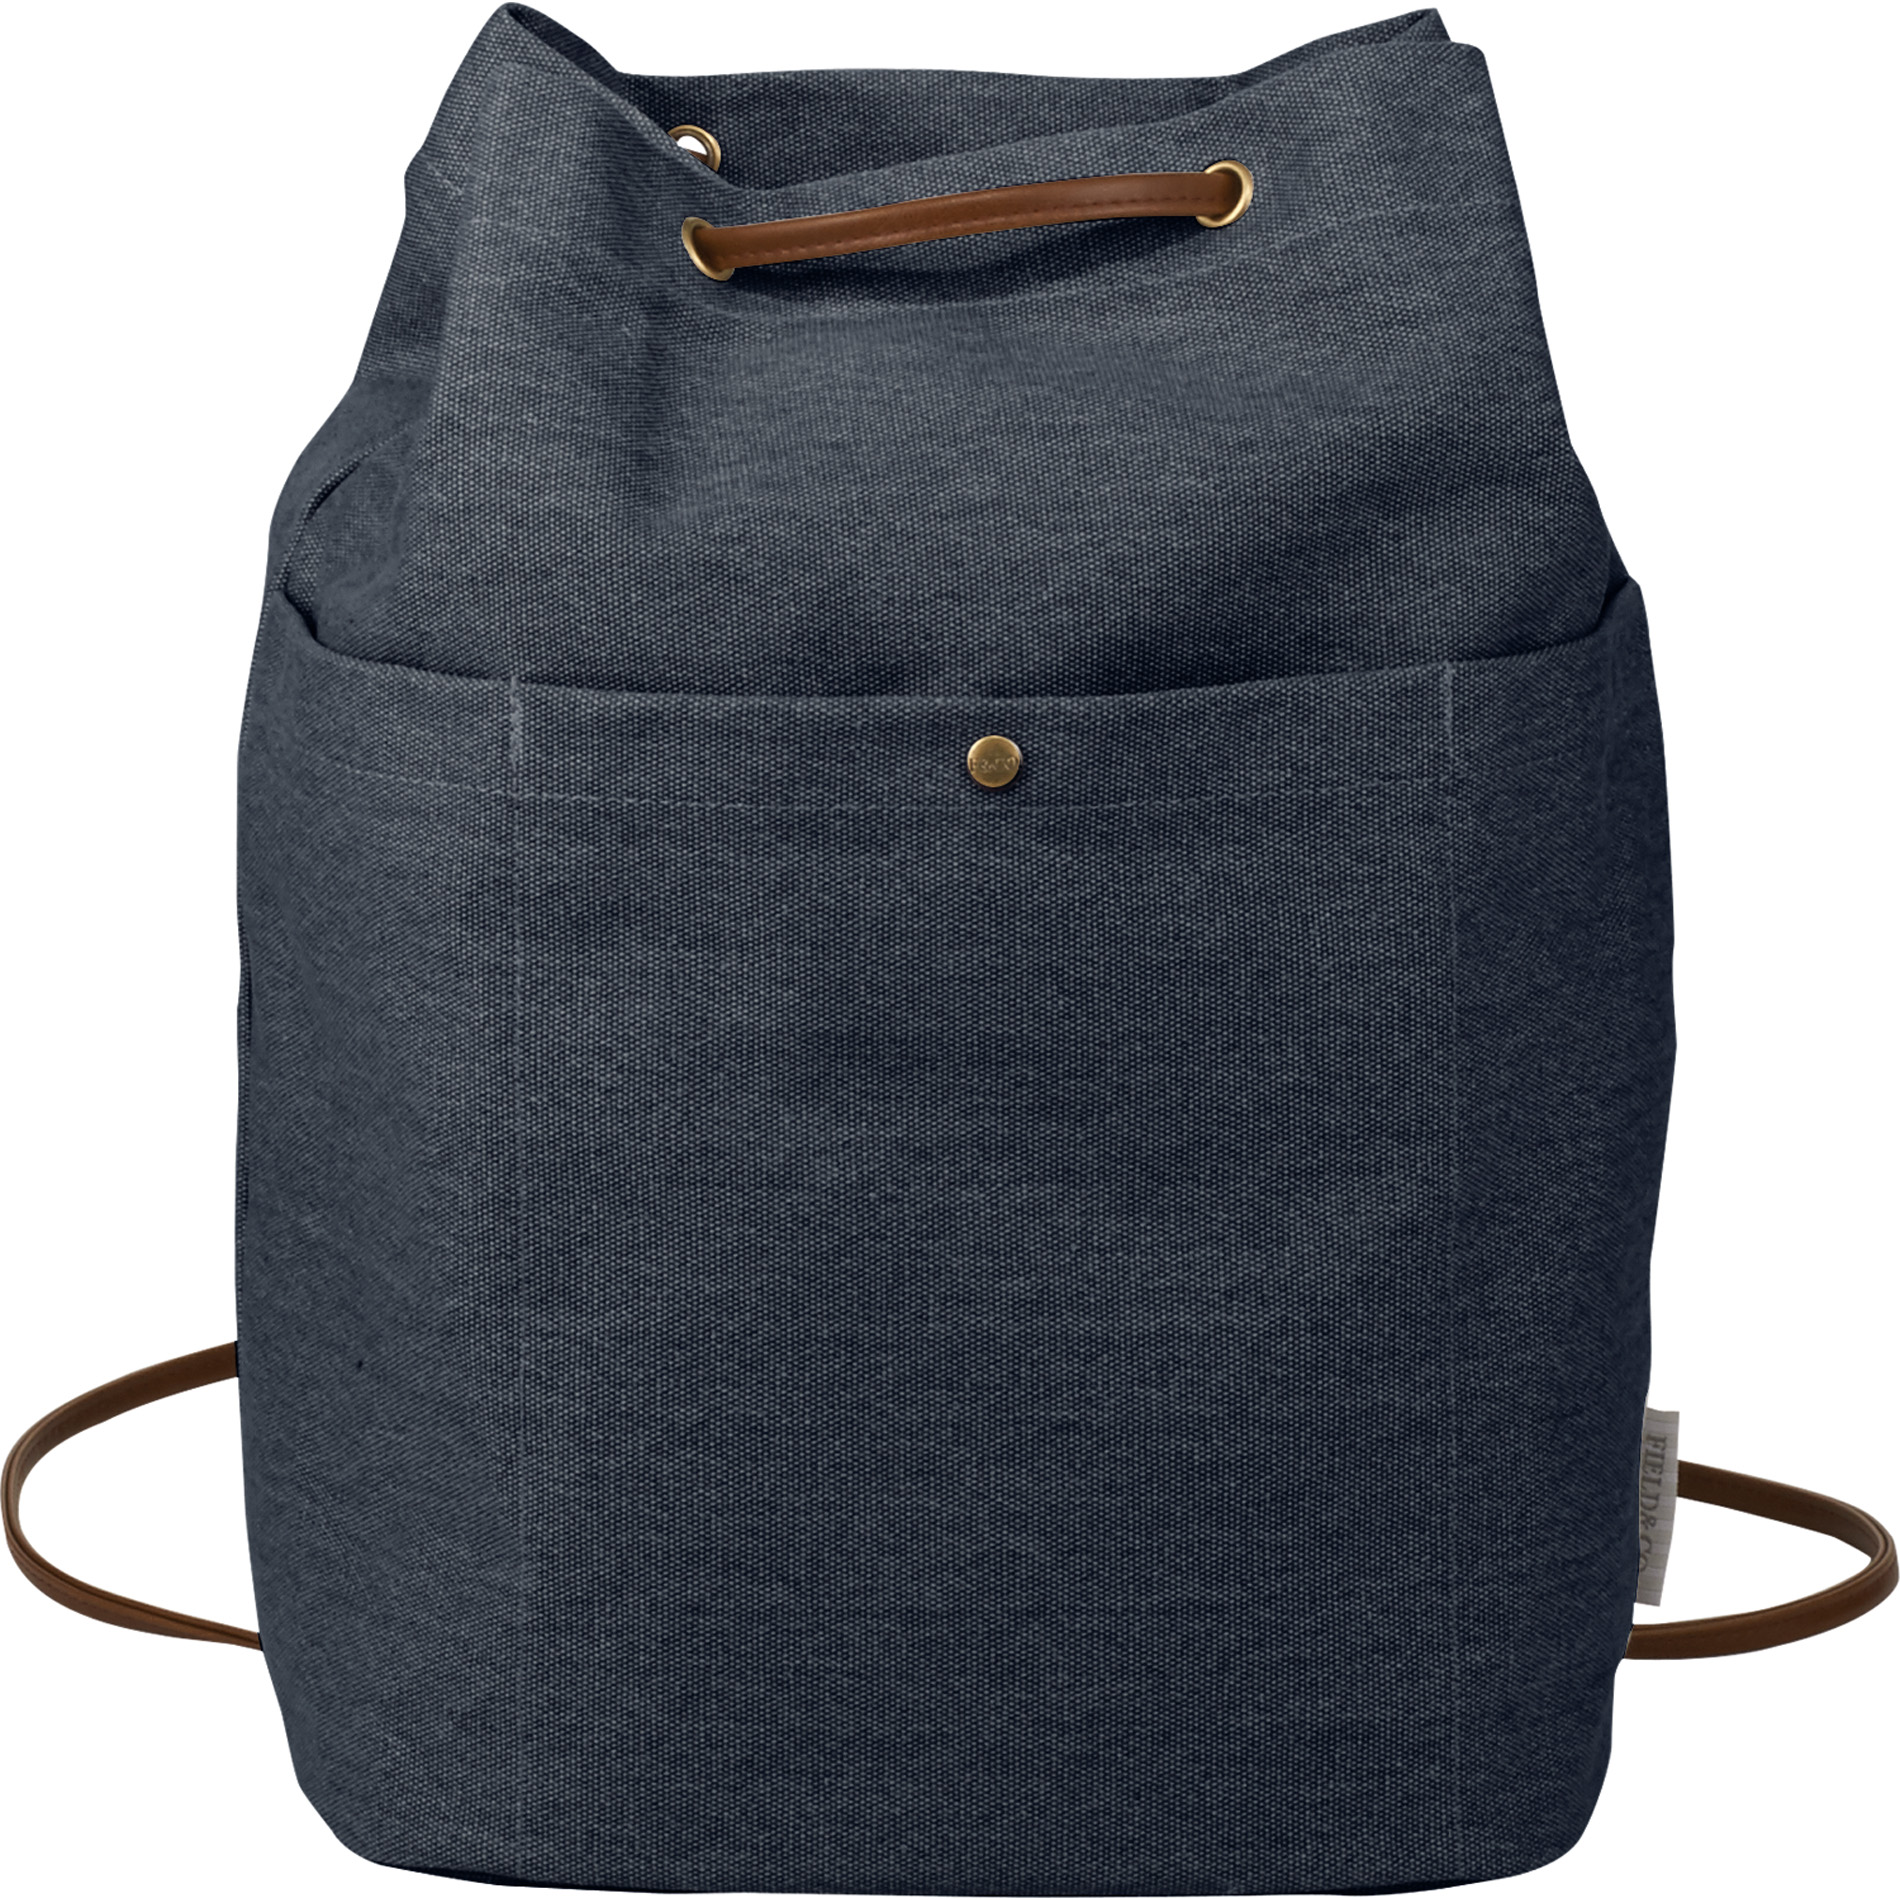 Field & Co. 7950-14 - 16oz Cotton Canvas Convertible Tote